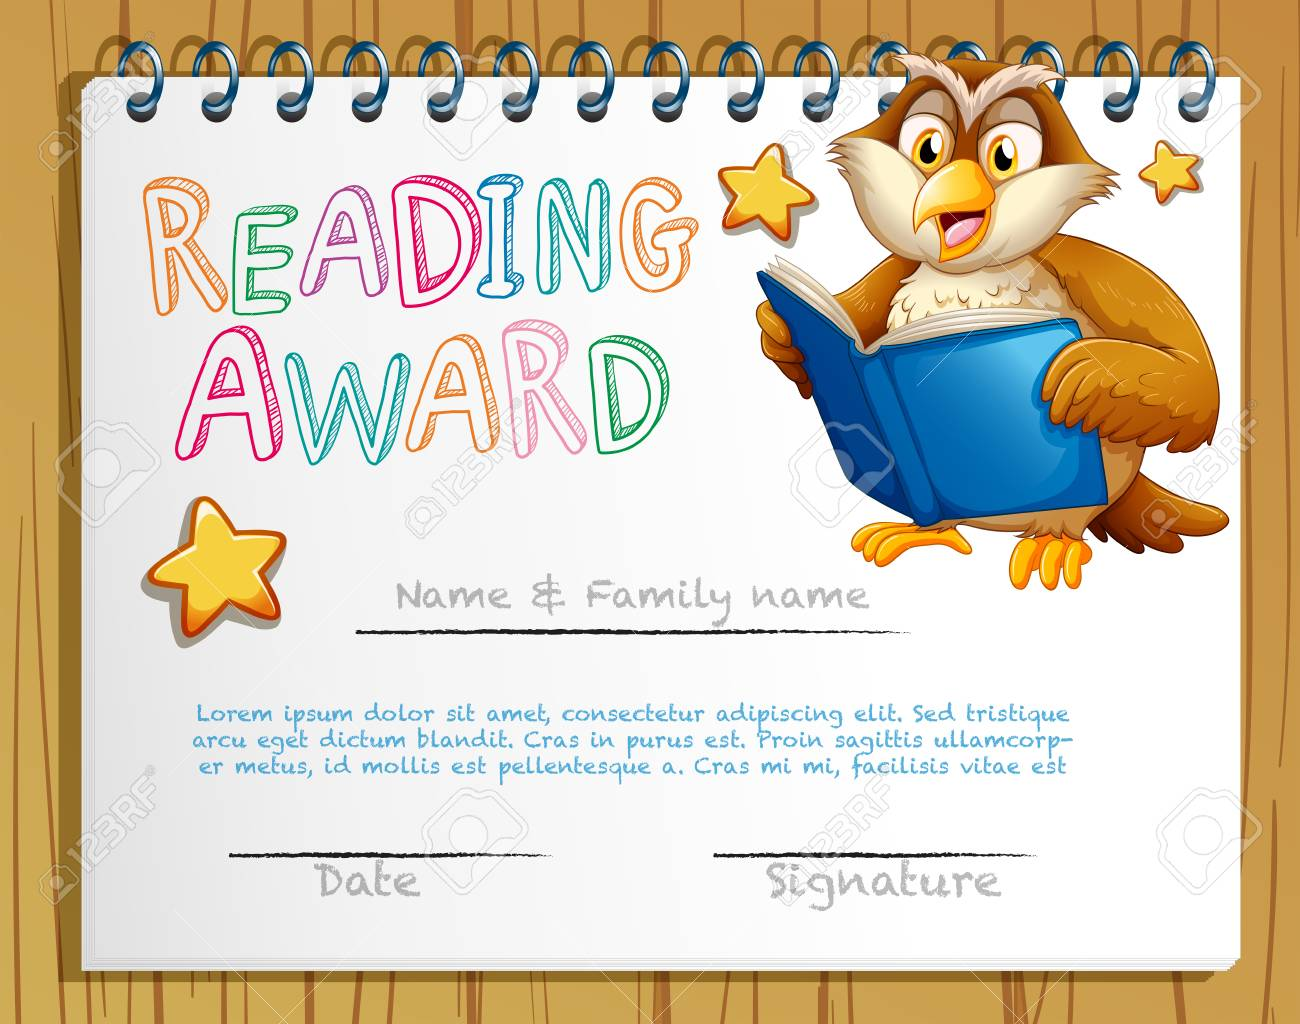 Certificate template with owl reading book illustration royalty free certificate template with owl reading book illustration stock vector 73056624 yadclub Choice Image